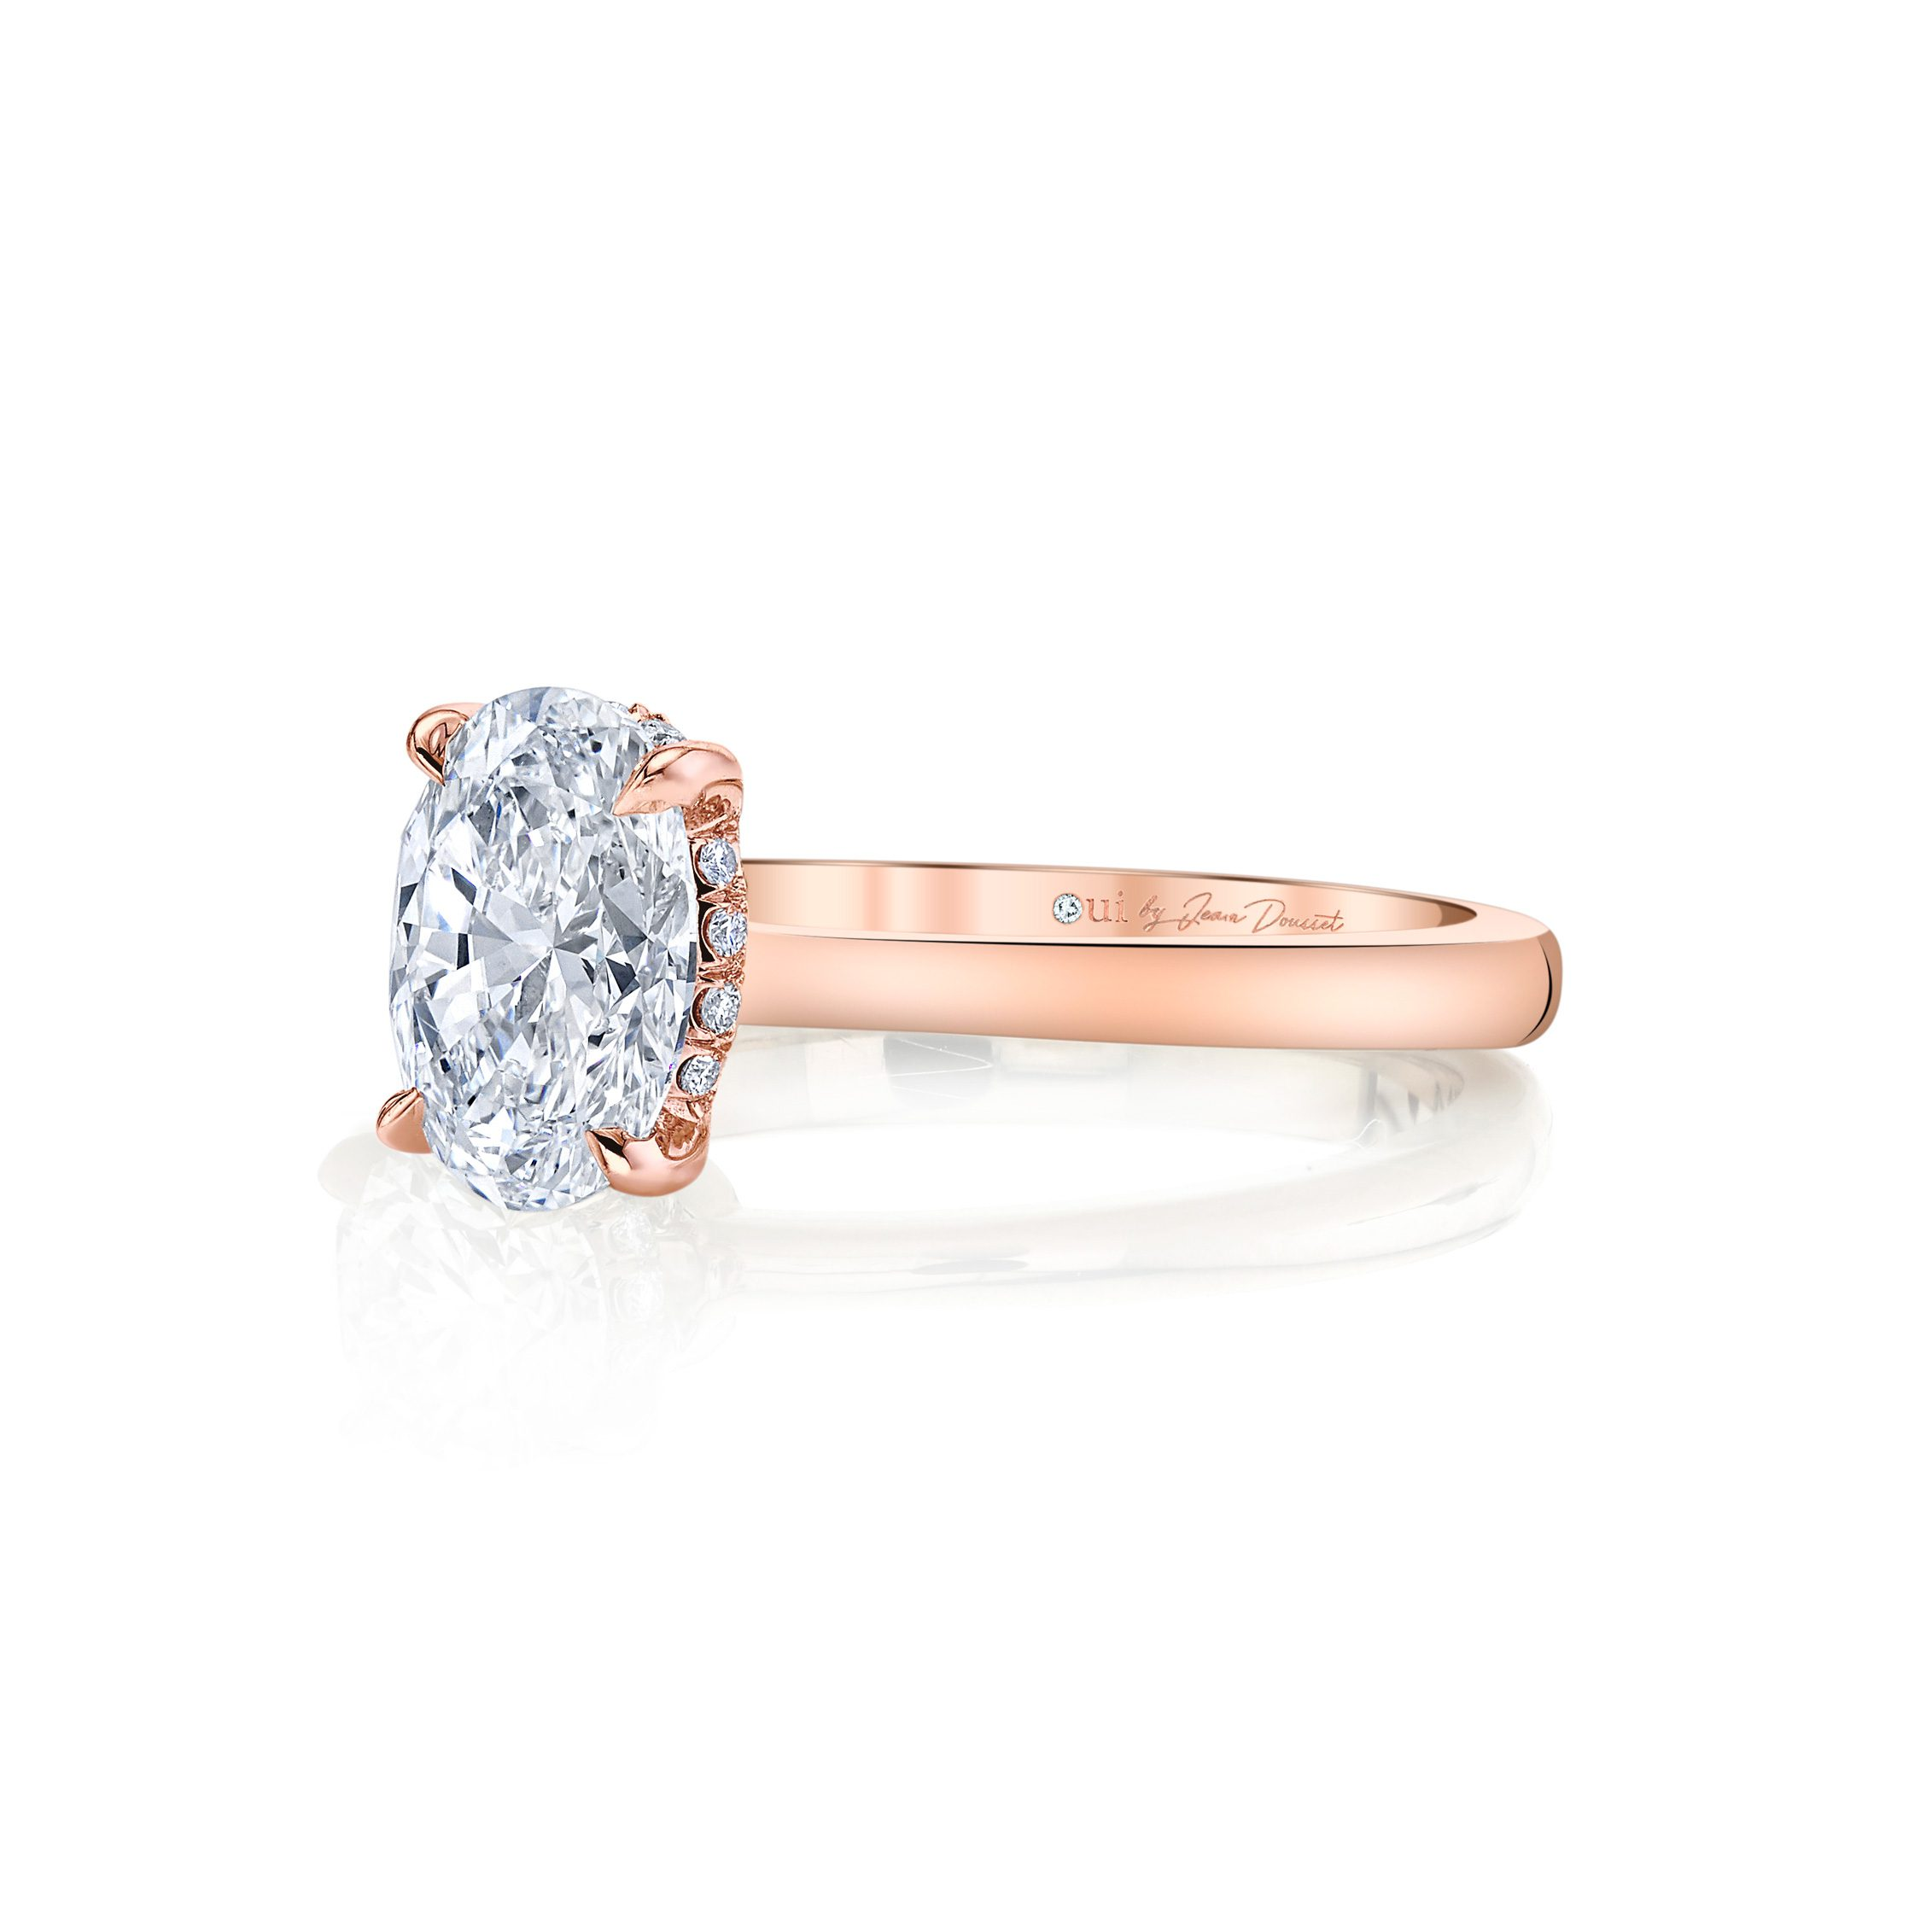 Colette Oval Solitaire Engagement Ring with a sold band in 18k Rose Gold Side Shot by Oui by Jean Dousset